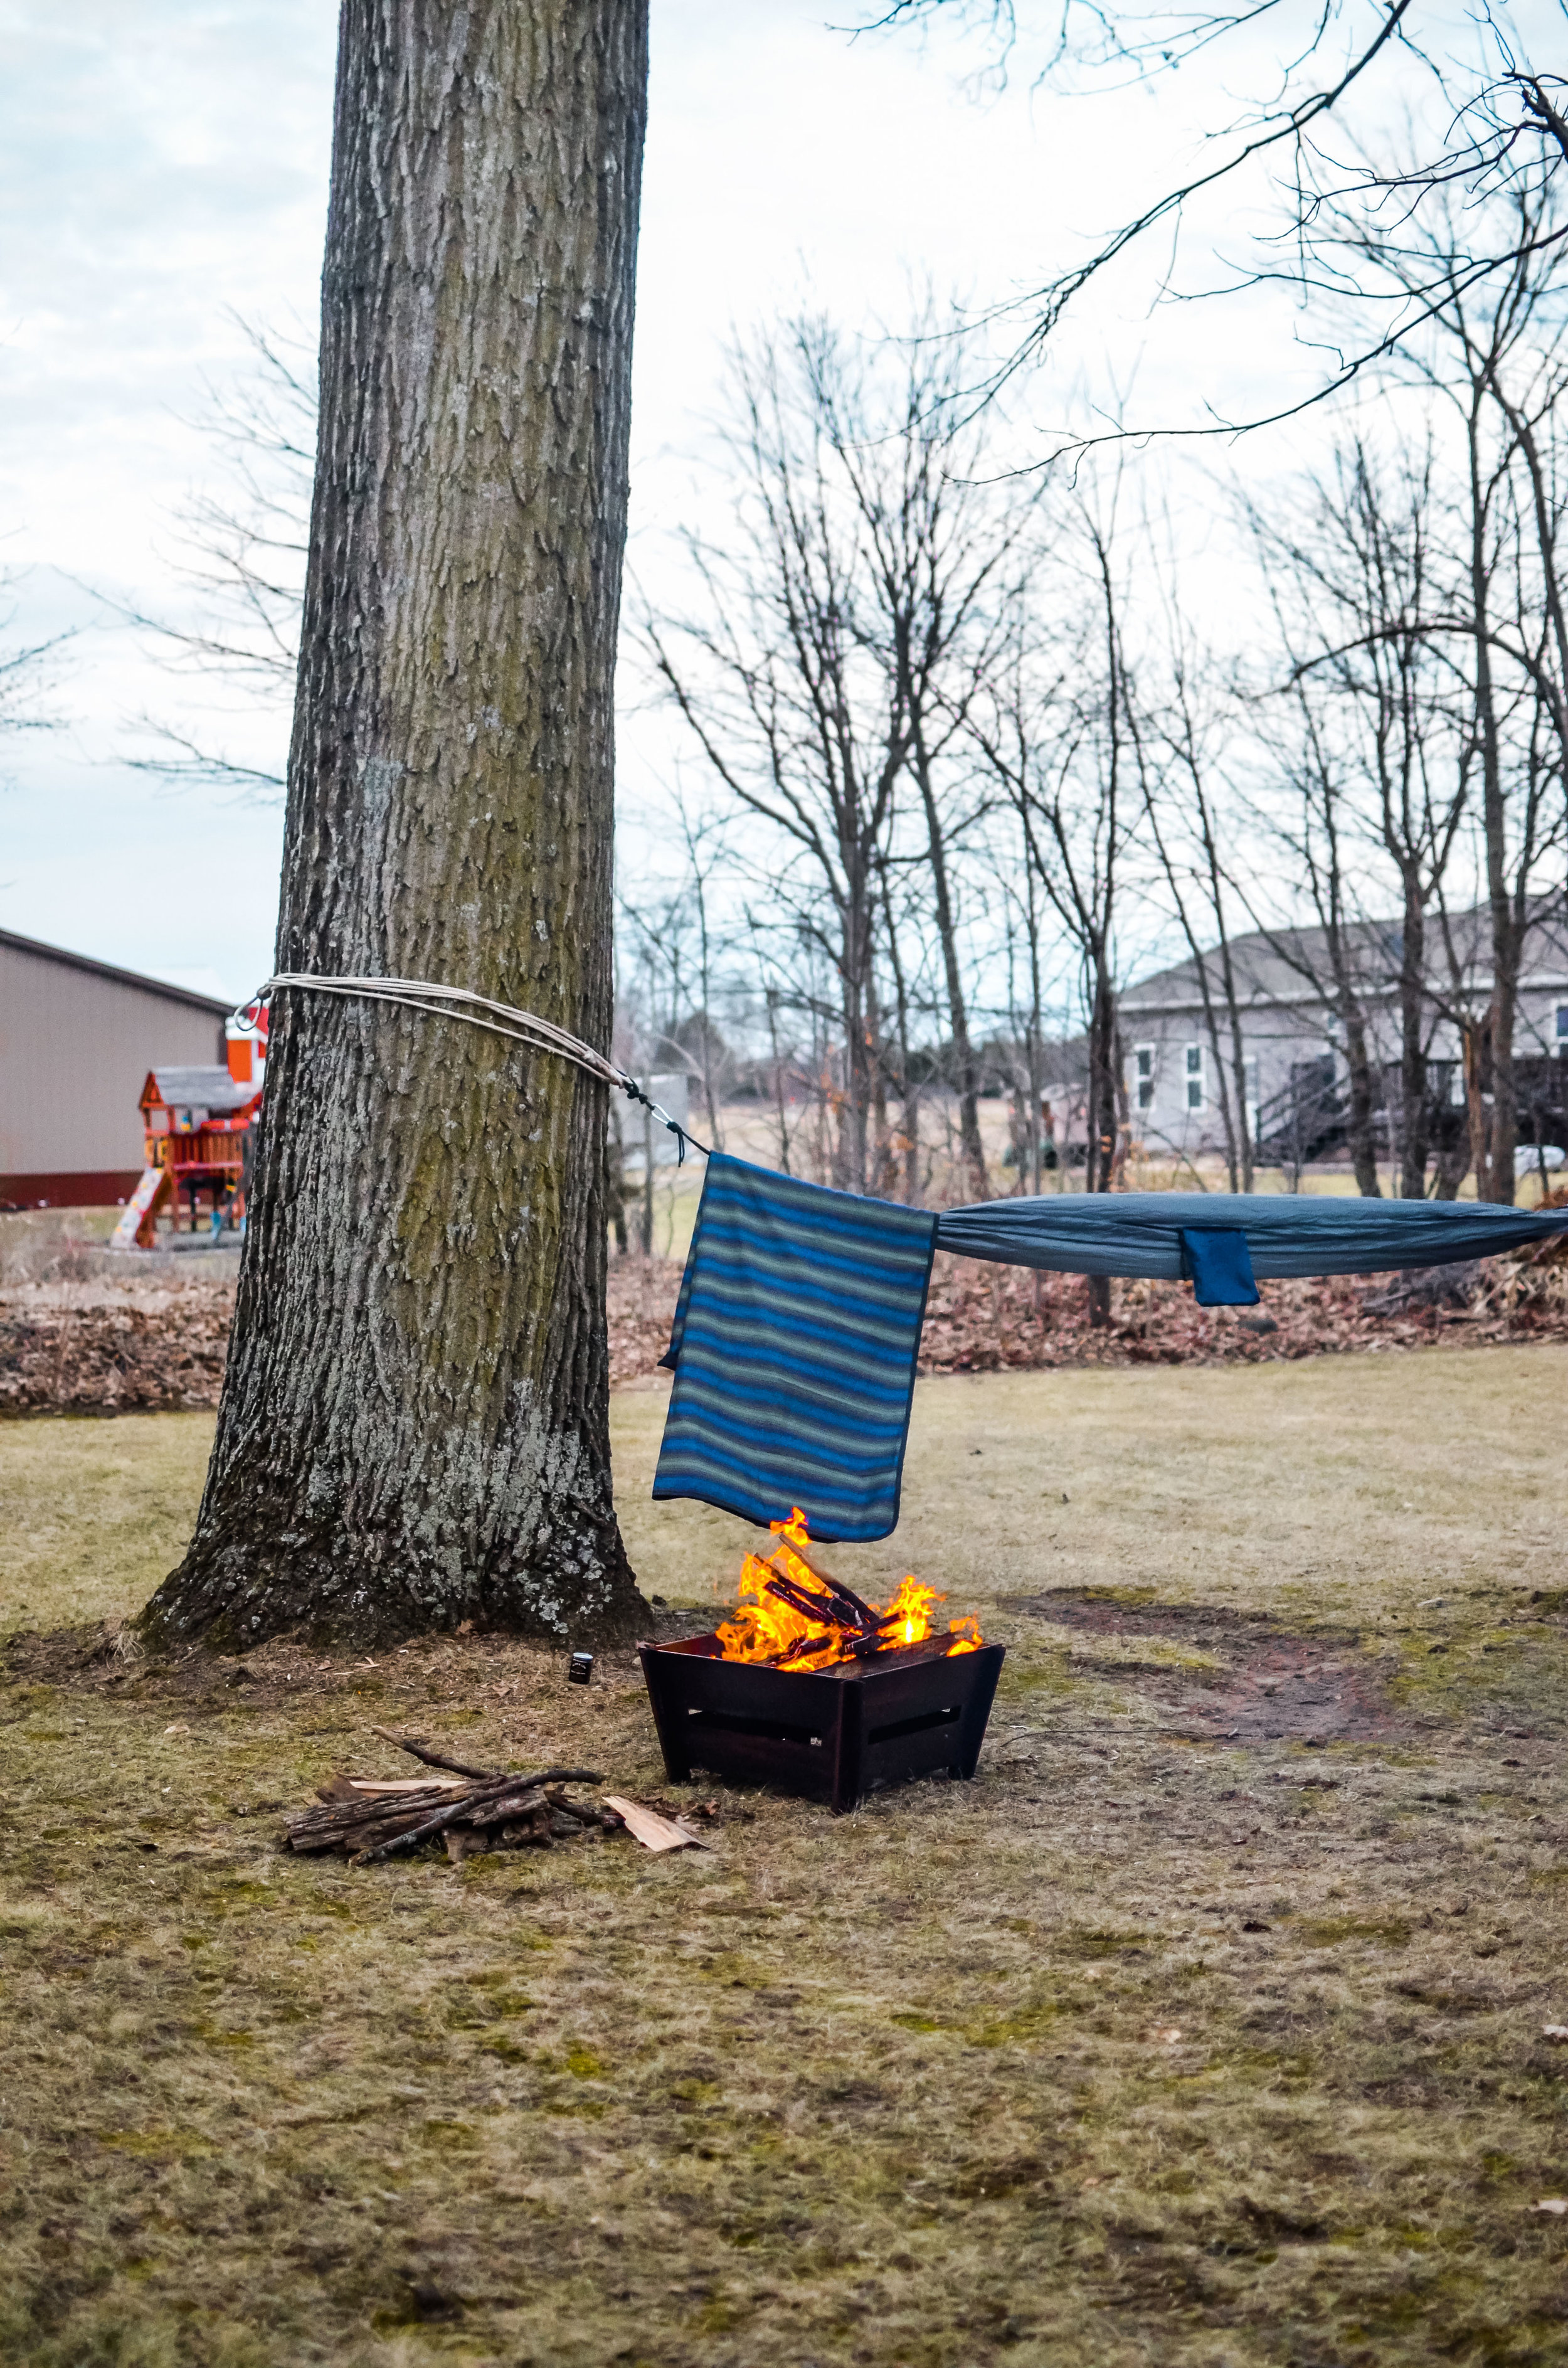 Spring_Is_Here_Bespoke_Post_Coaltree_Hammock_Camping-3.jpg